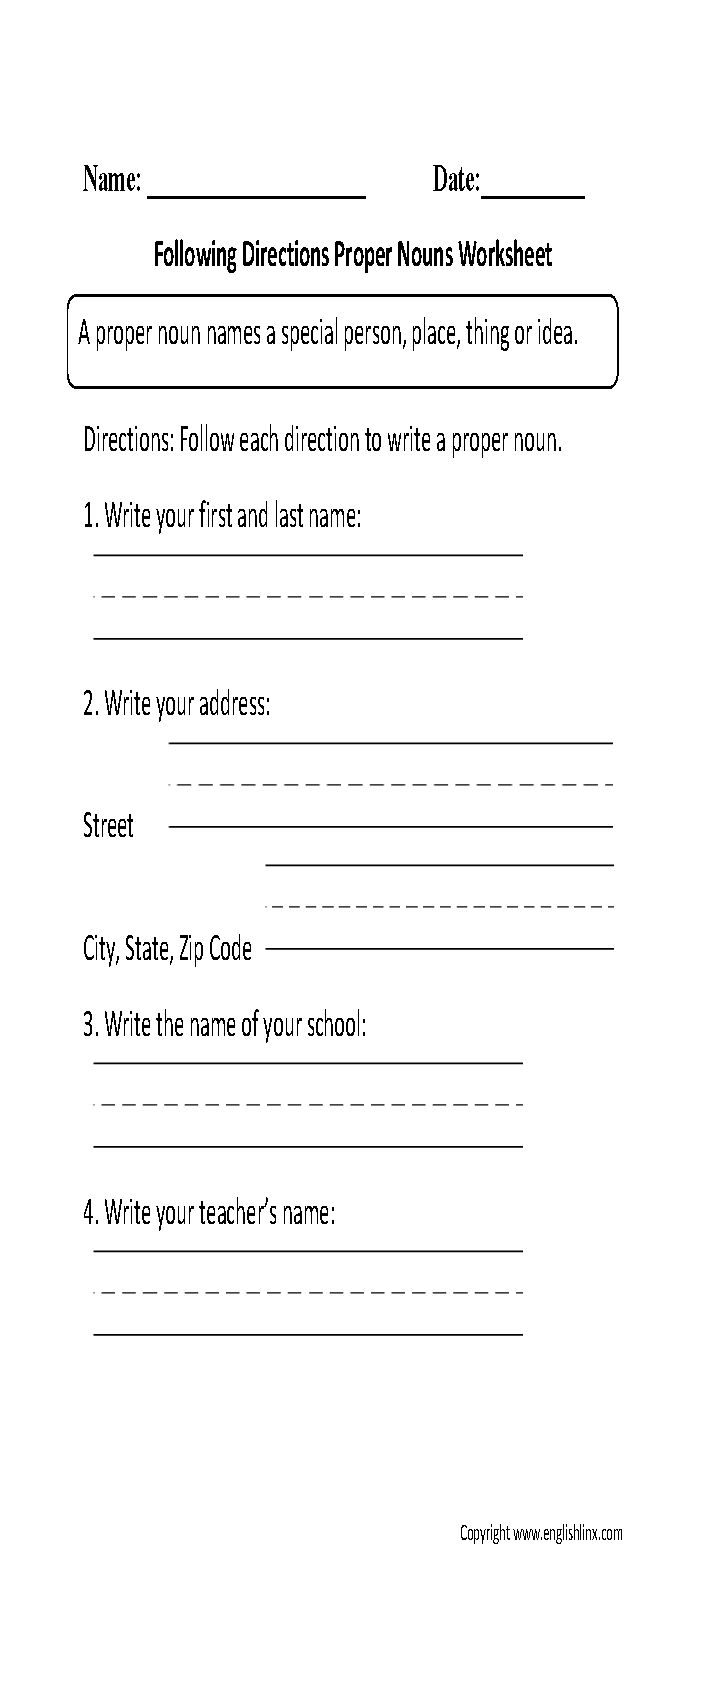 worksheet Noun Worksheets 4th Grade 17 best ideas about proper nouns worksheet on pinterest a noun names special person place thing or idea common any idea